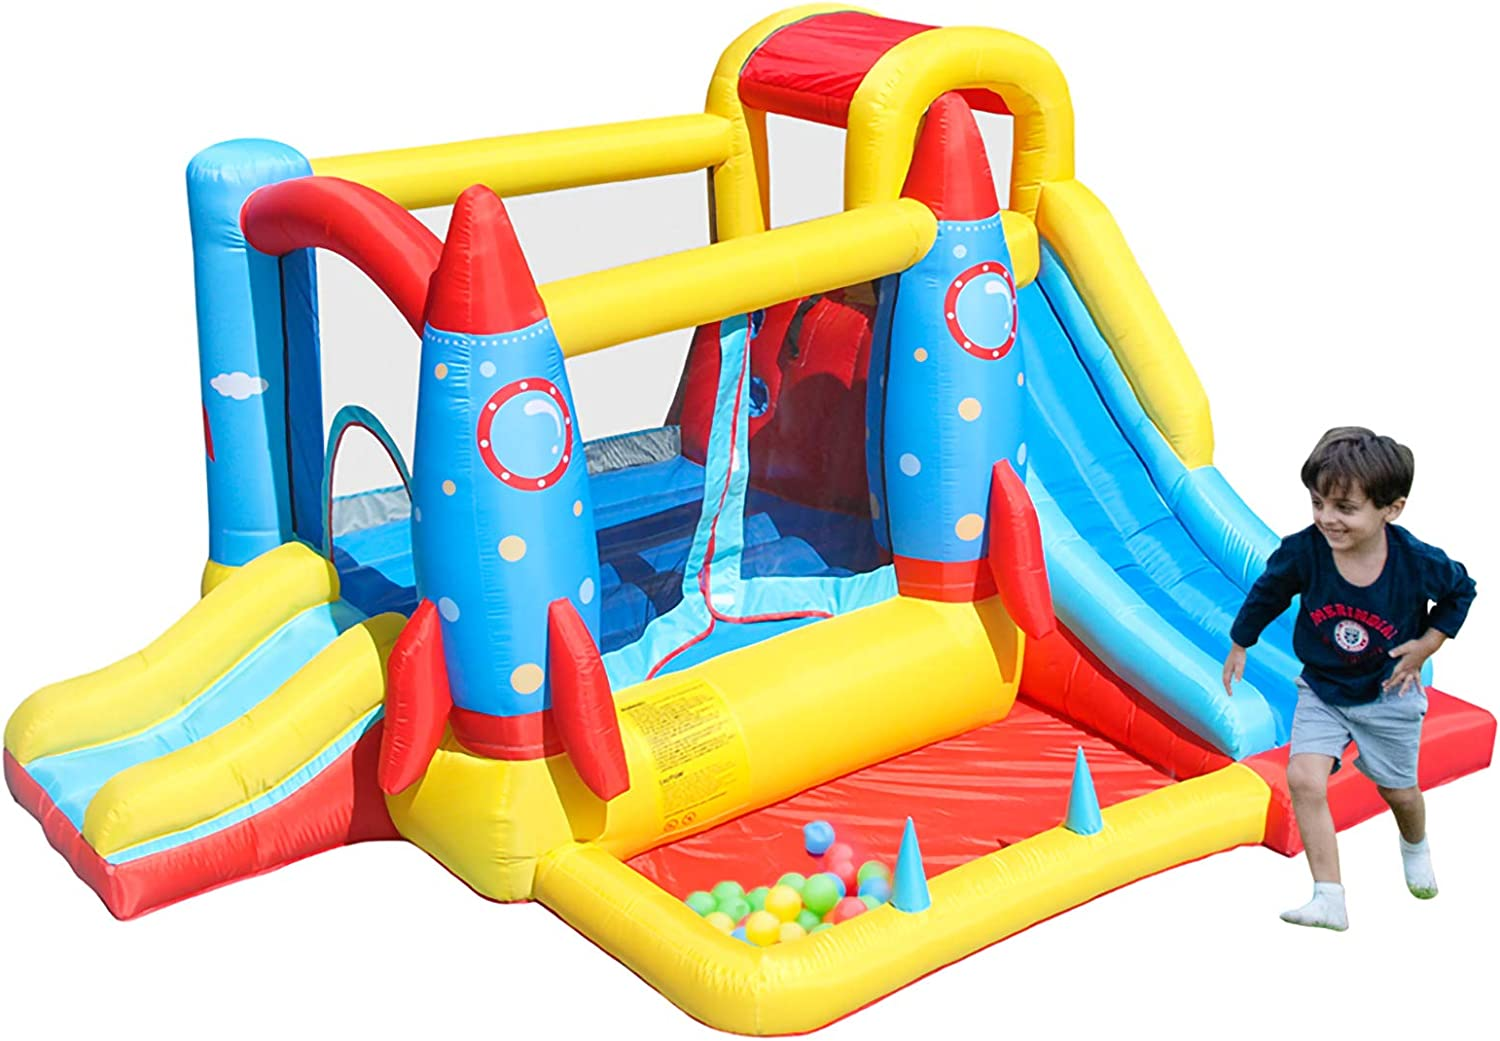 AirMyFun Inflatable Bounce House [Alternative dealer] Bouncy Blower with Max 68% OFF Castle Air P